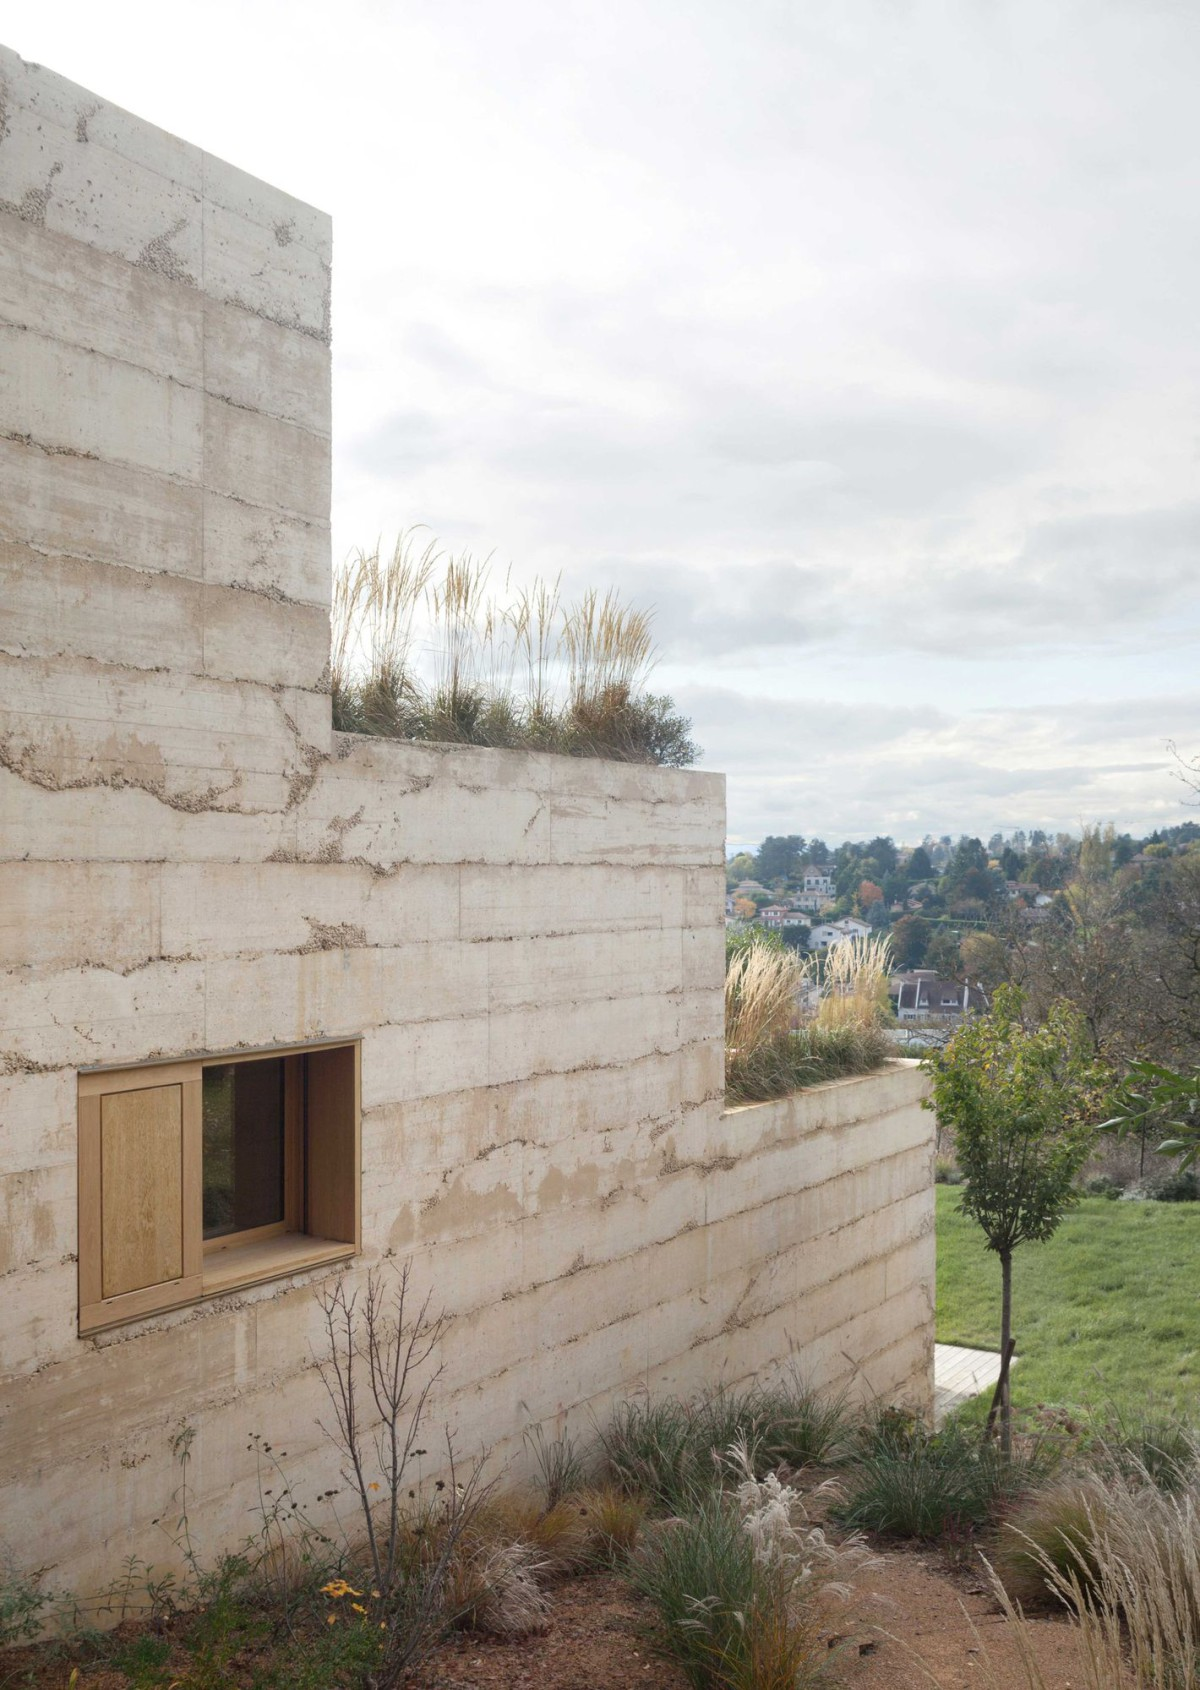 Tectoniques Architectes . P. House .  Saint-Cyr-au-Mont-d'Or  afasia (3)